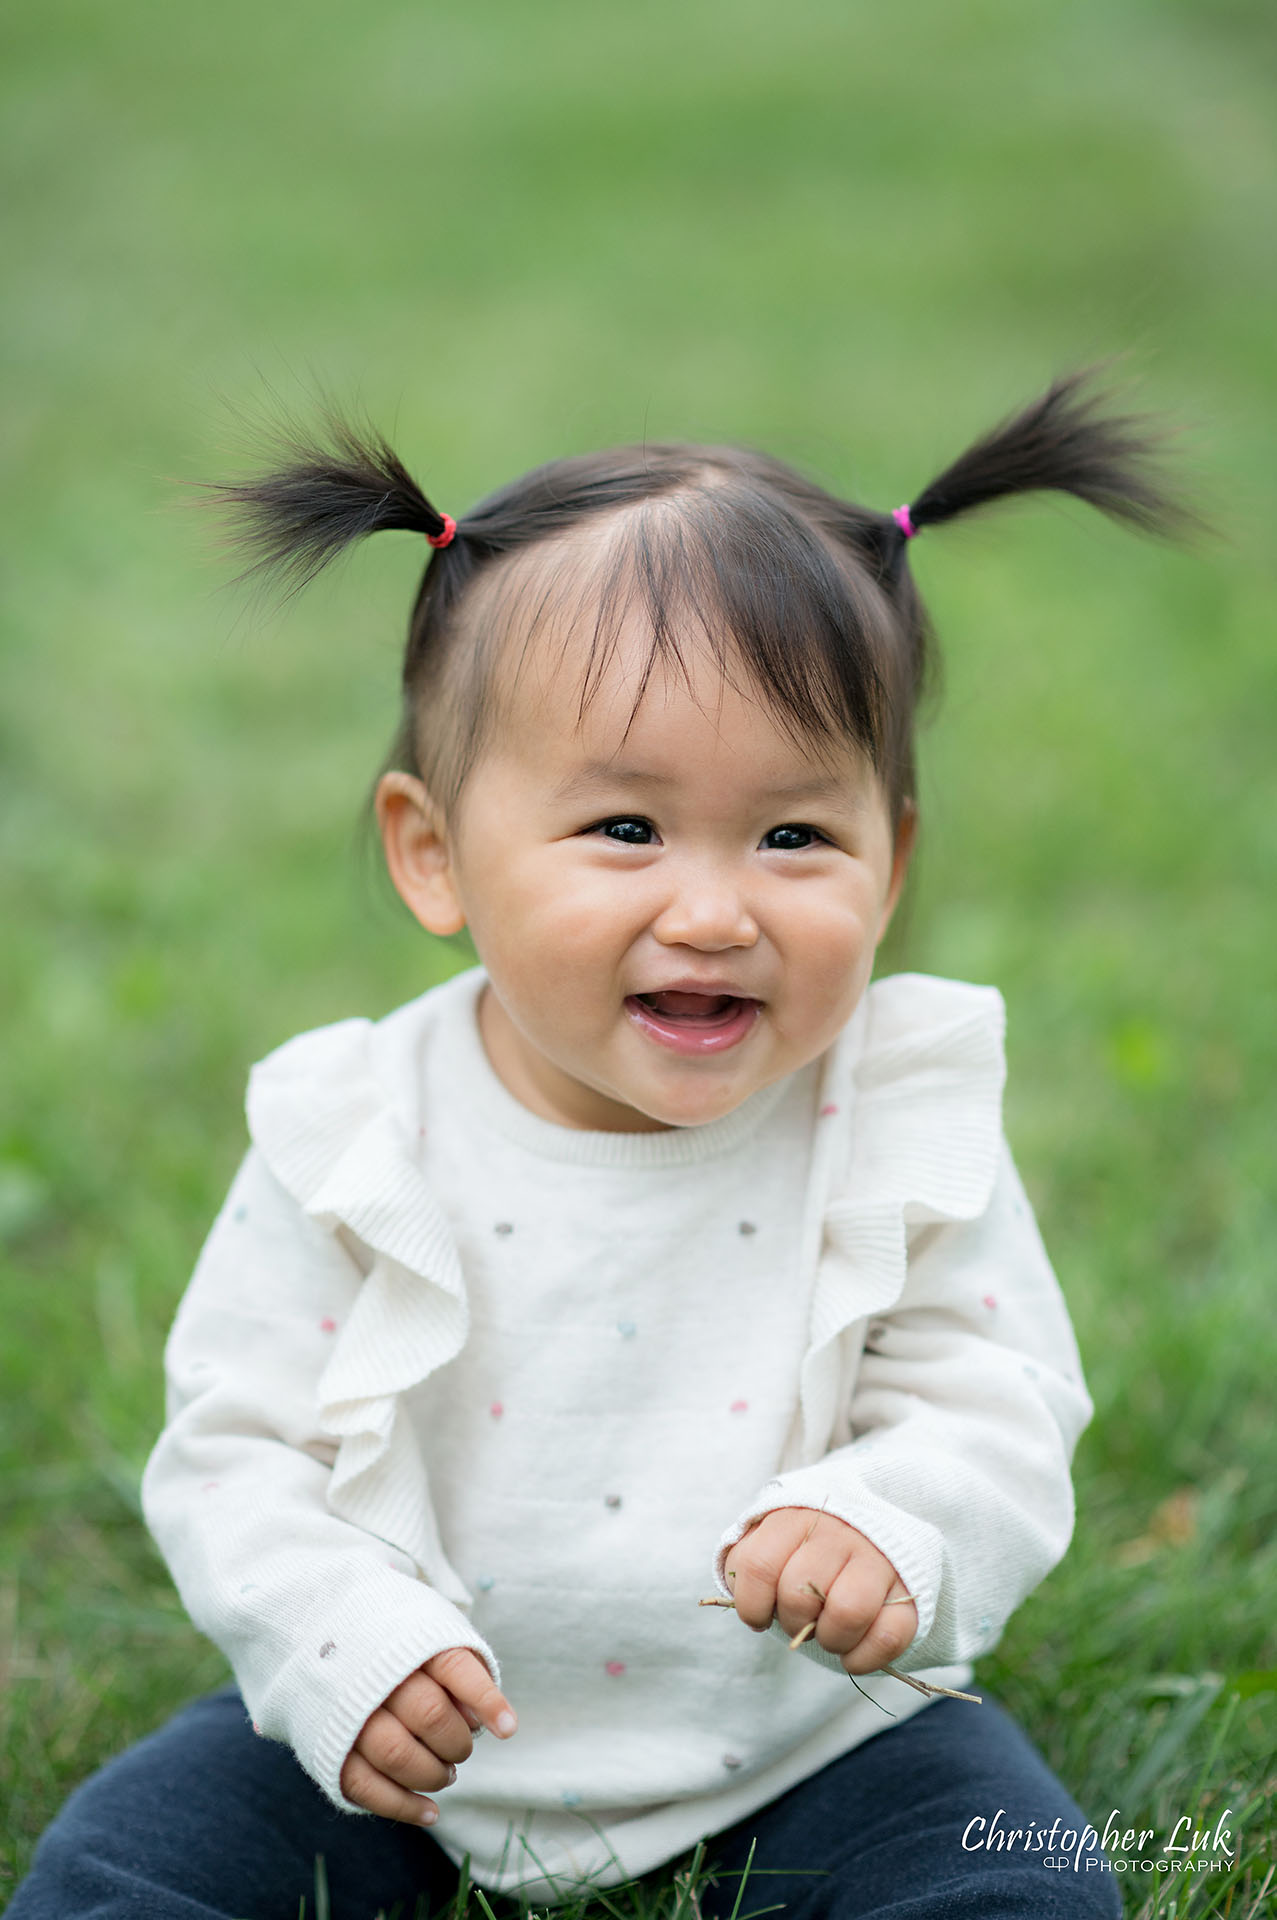 Christopher Luk Toronto Markham Family Wedding Photographer Baby Girl Natural Candid Photojournalistic Sitting Smiling Happy Portrait Close Up Detail Pig Tails